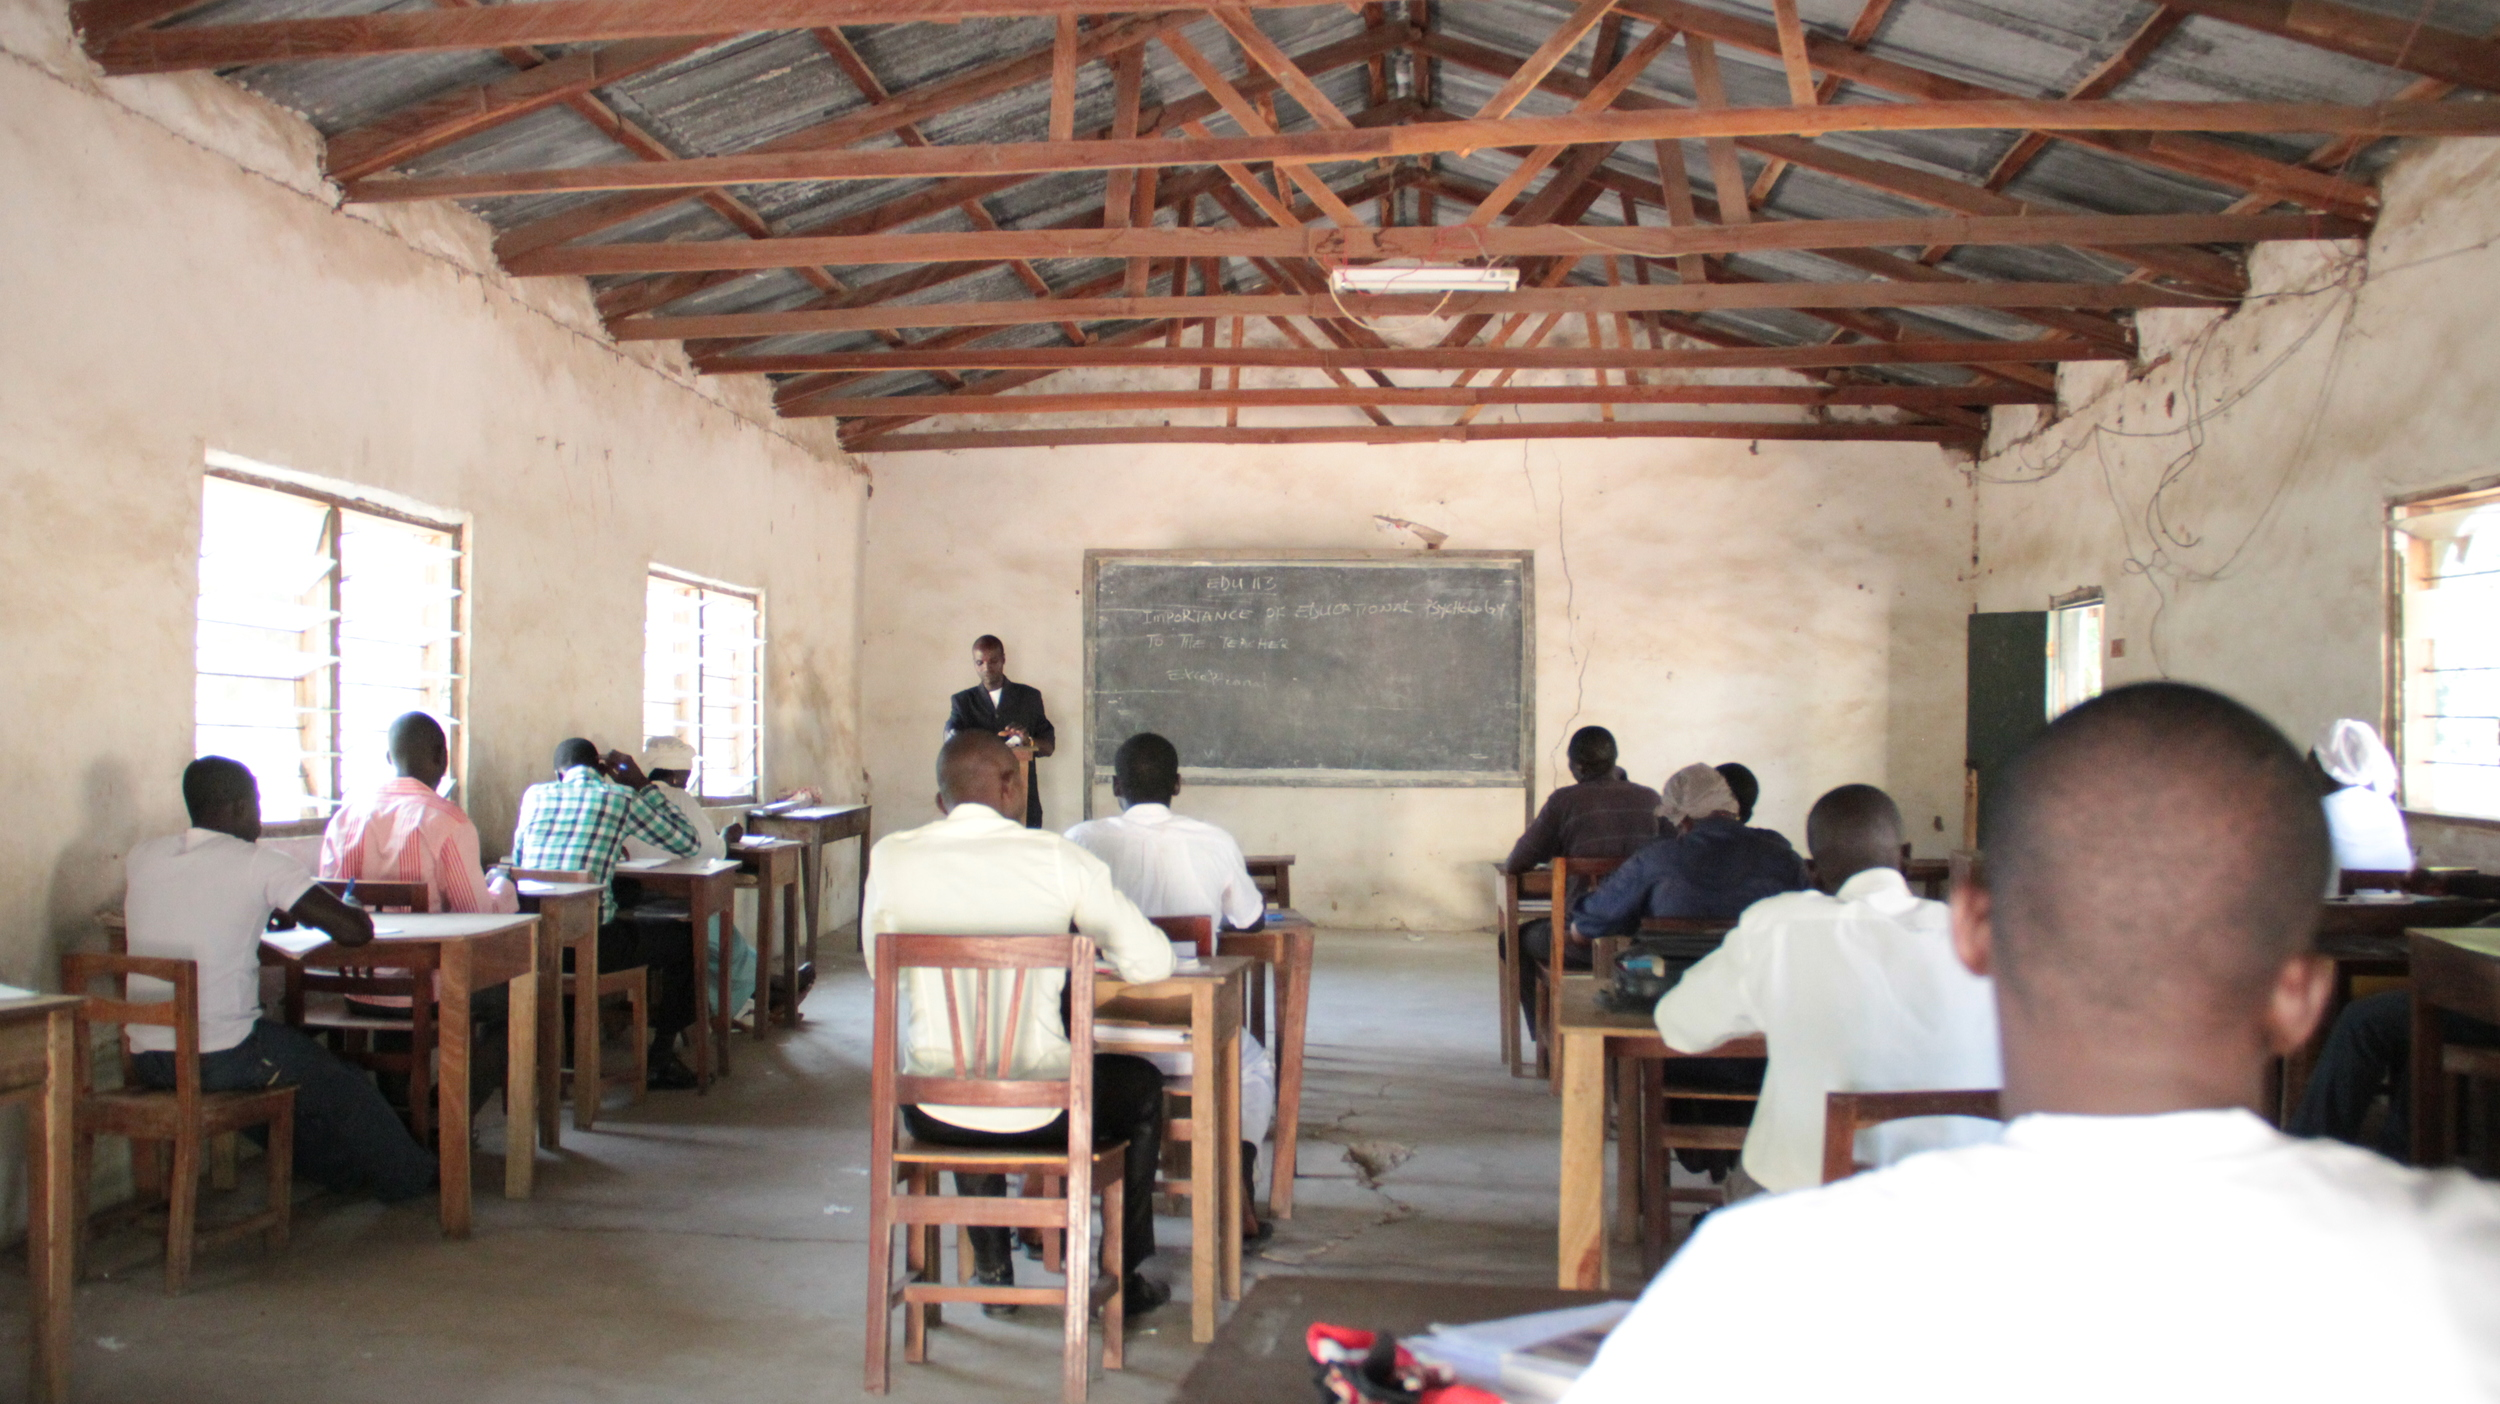 class in session in Old Chapel Building